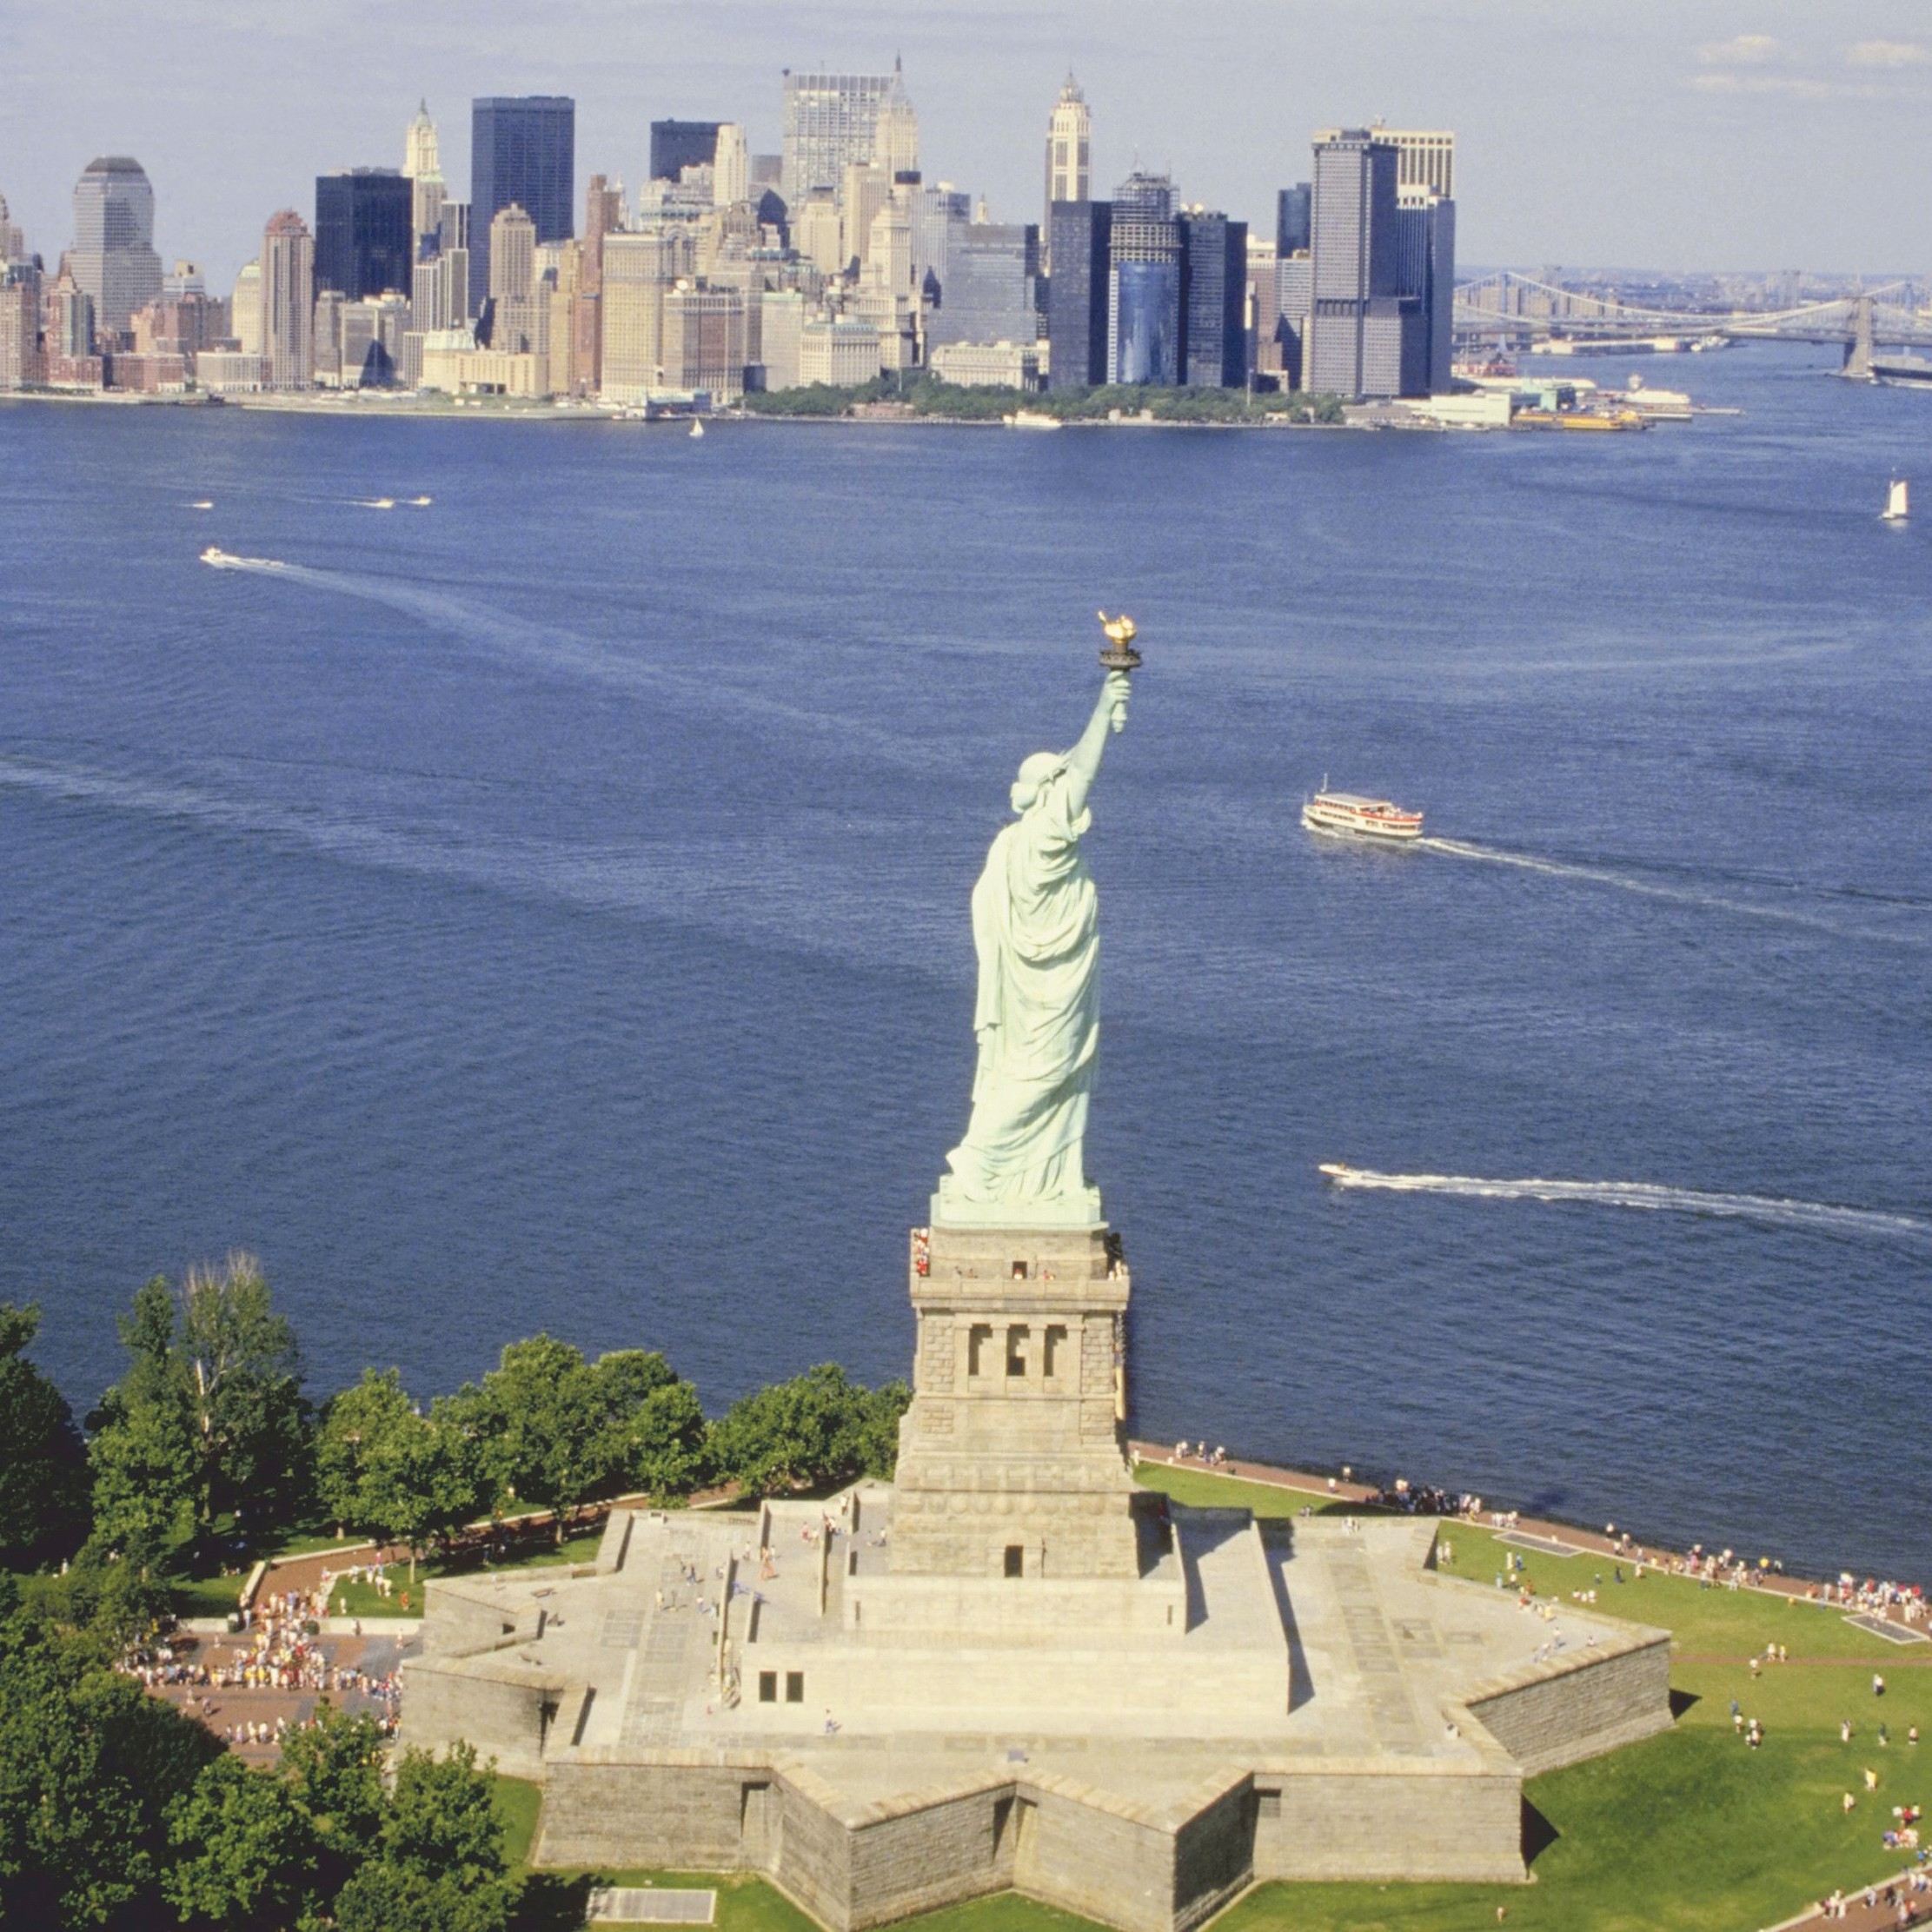 Nyc_Att_Statue_of_Liberty_and_Ellis_Island_Immigration_Museu